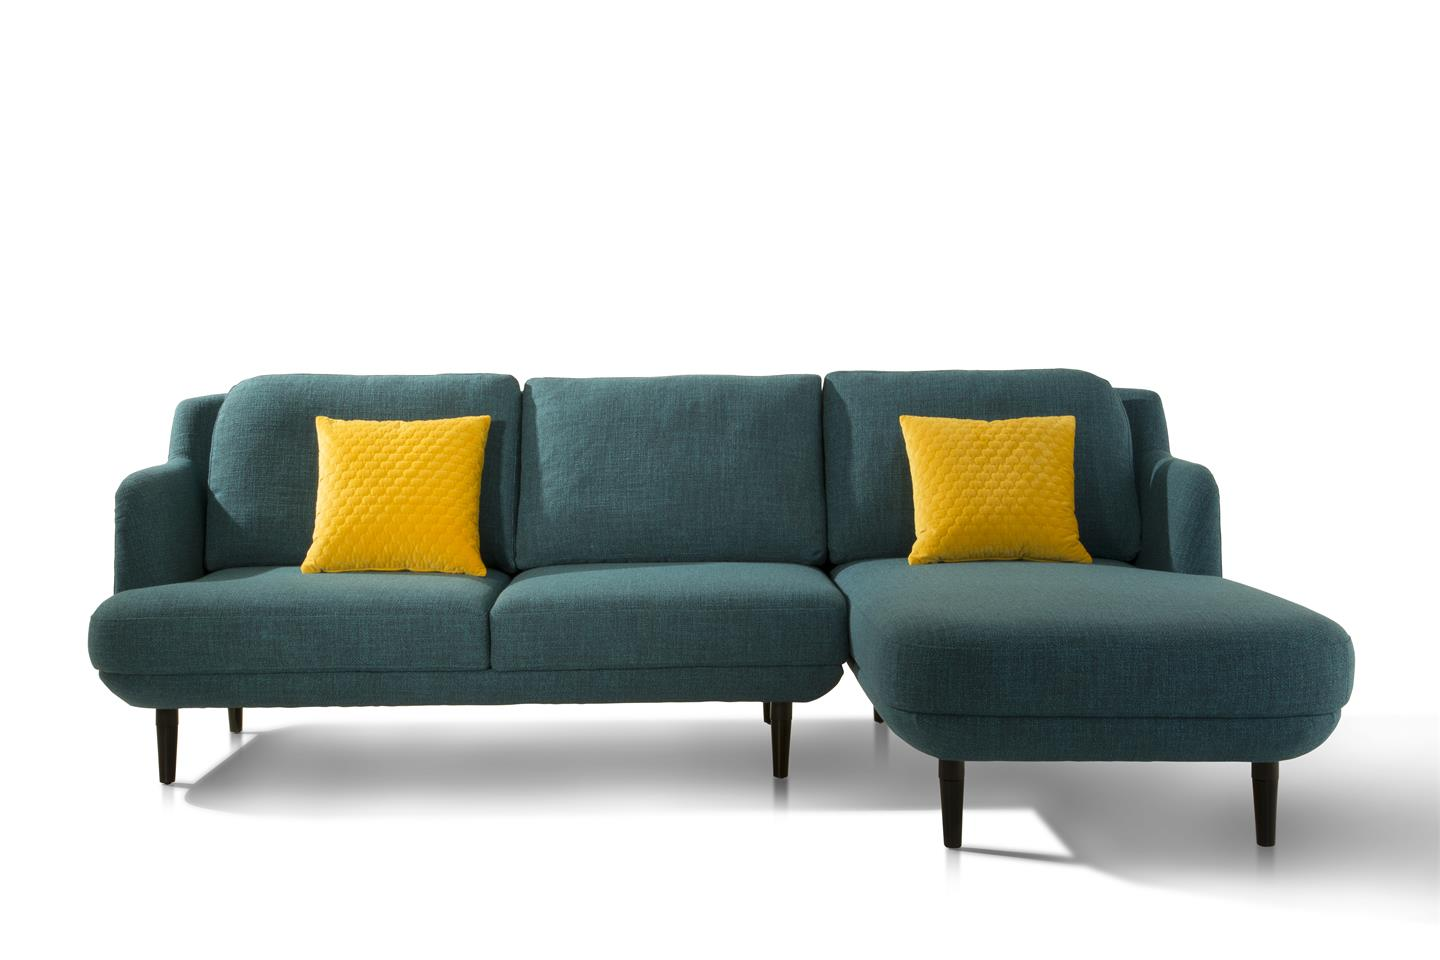 good quality sectional sofas ashley furniture grey sofa bed china supplier small simple